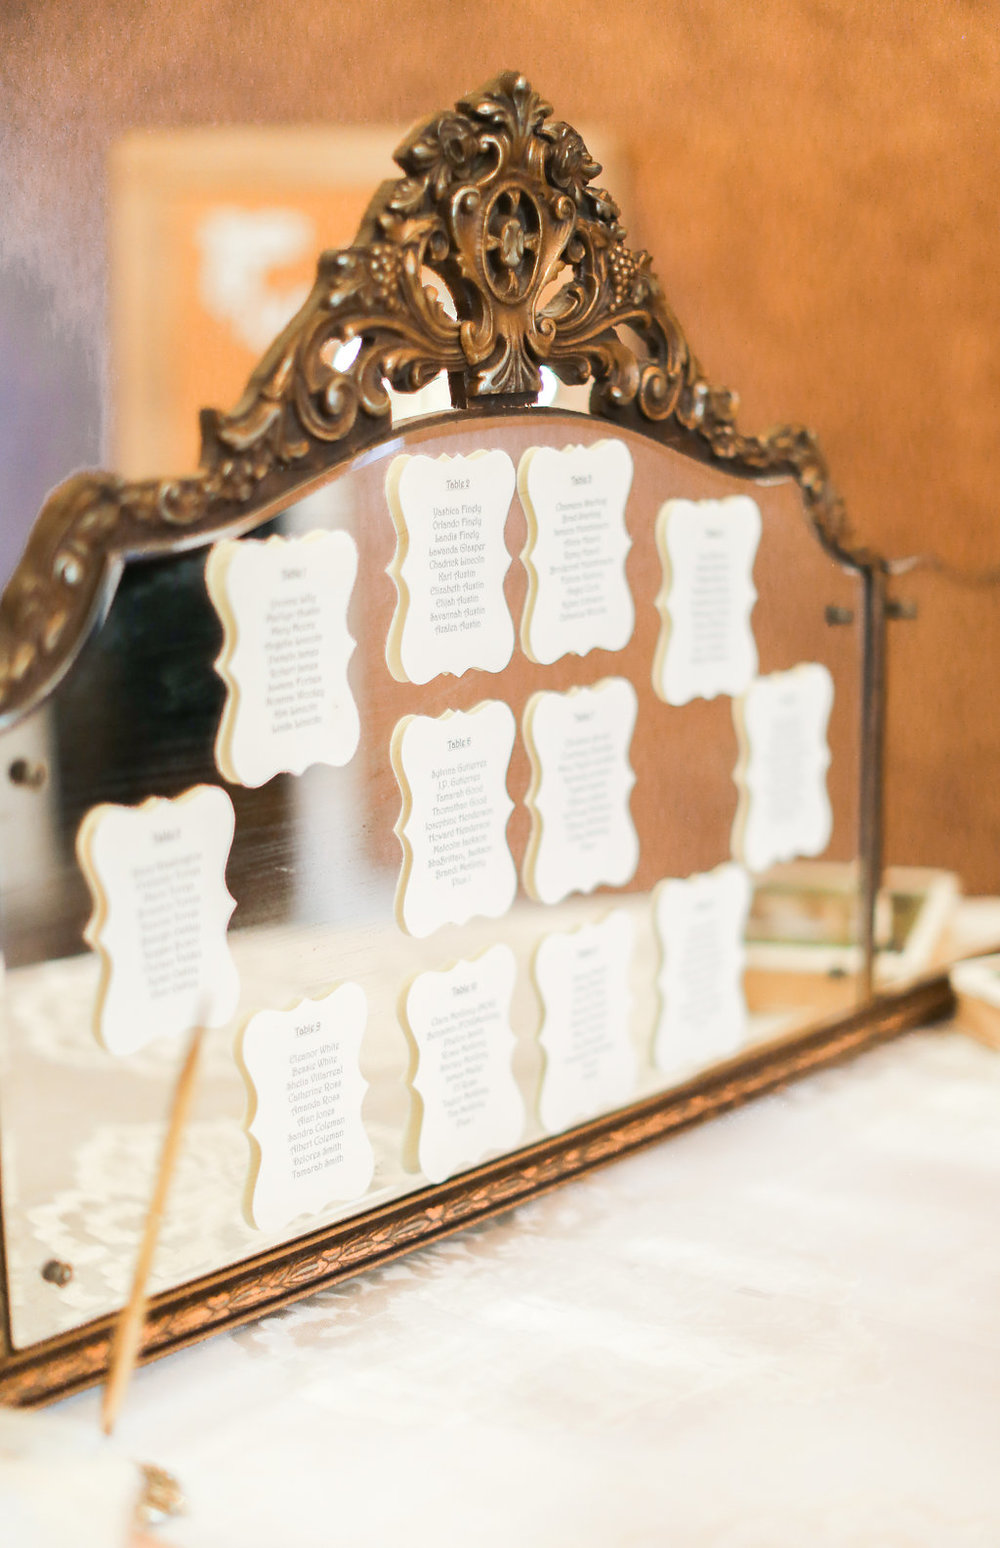 Vintage Crown Mirror